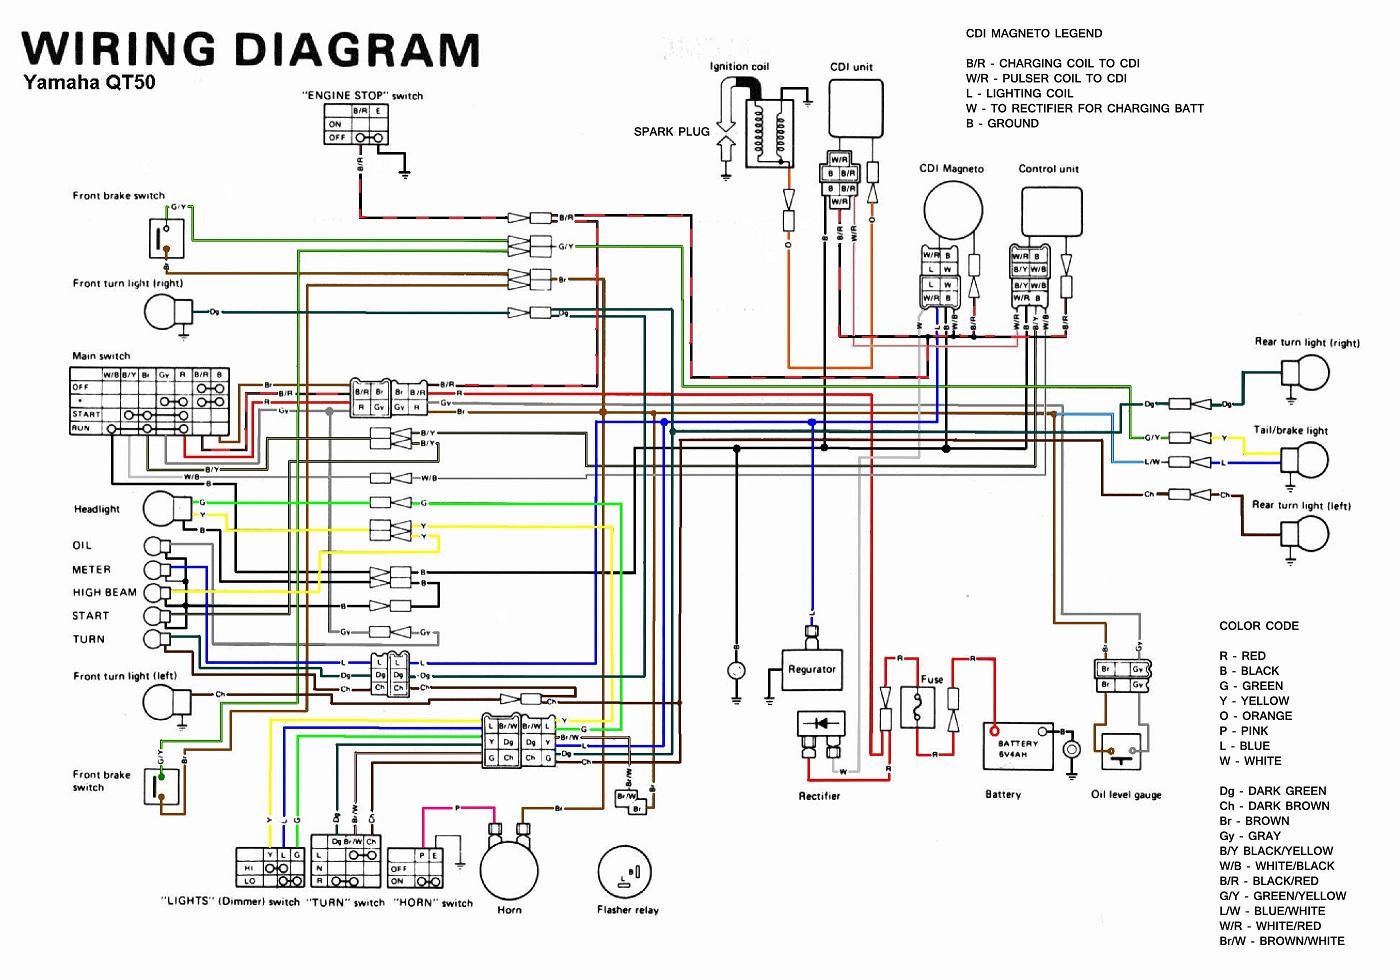 Fabulous Ktm 500 Exc Wiring Diagram Likewise Switch Wiring Diagram On Xr650R Wiring Cloud Hisonepsysticxongrecoveryedborg